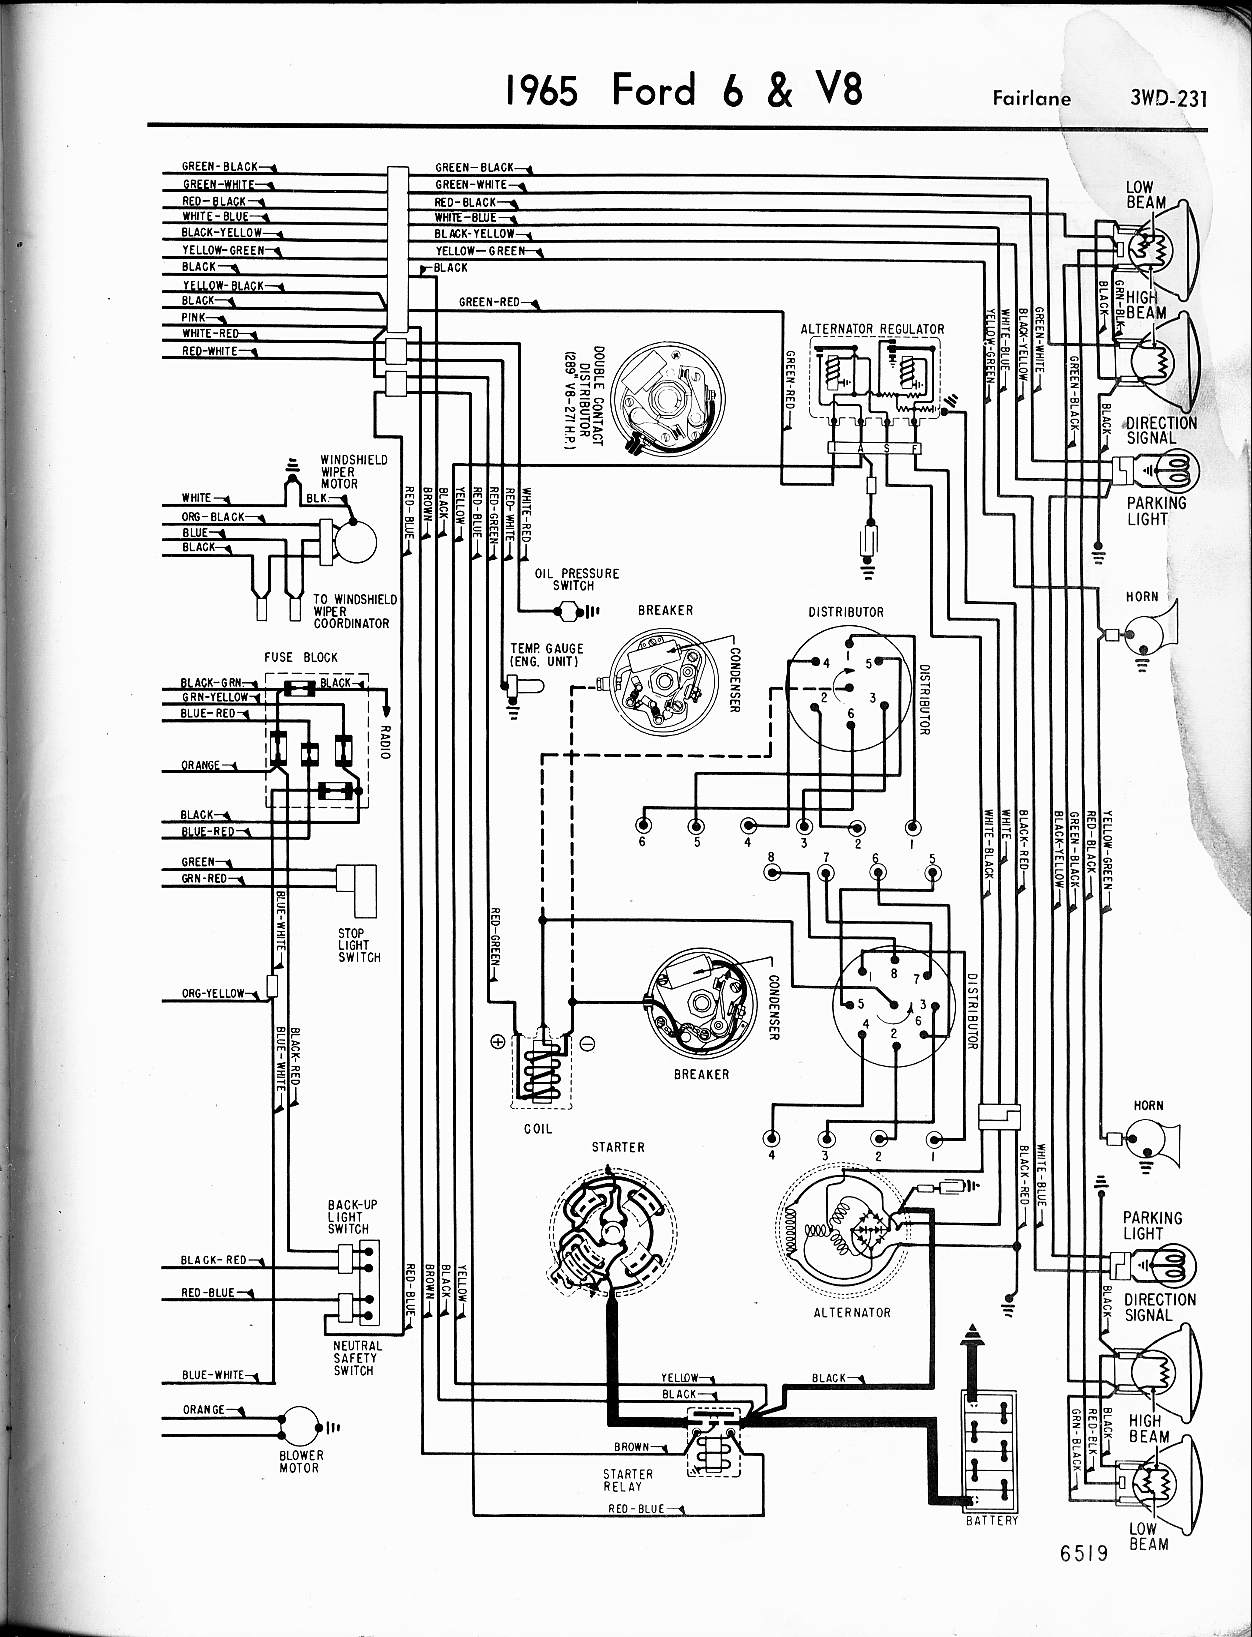 MWire5765 231 57 65 ford wiring diagrams 1965 ford alternator wiring diagram at eliteediting.co